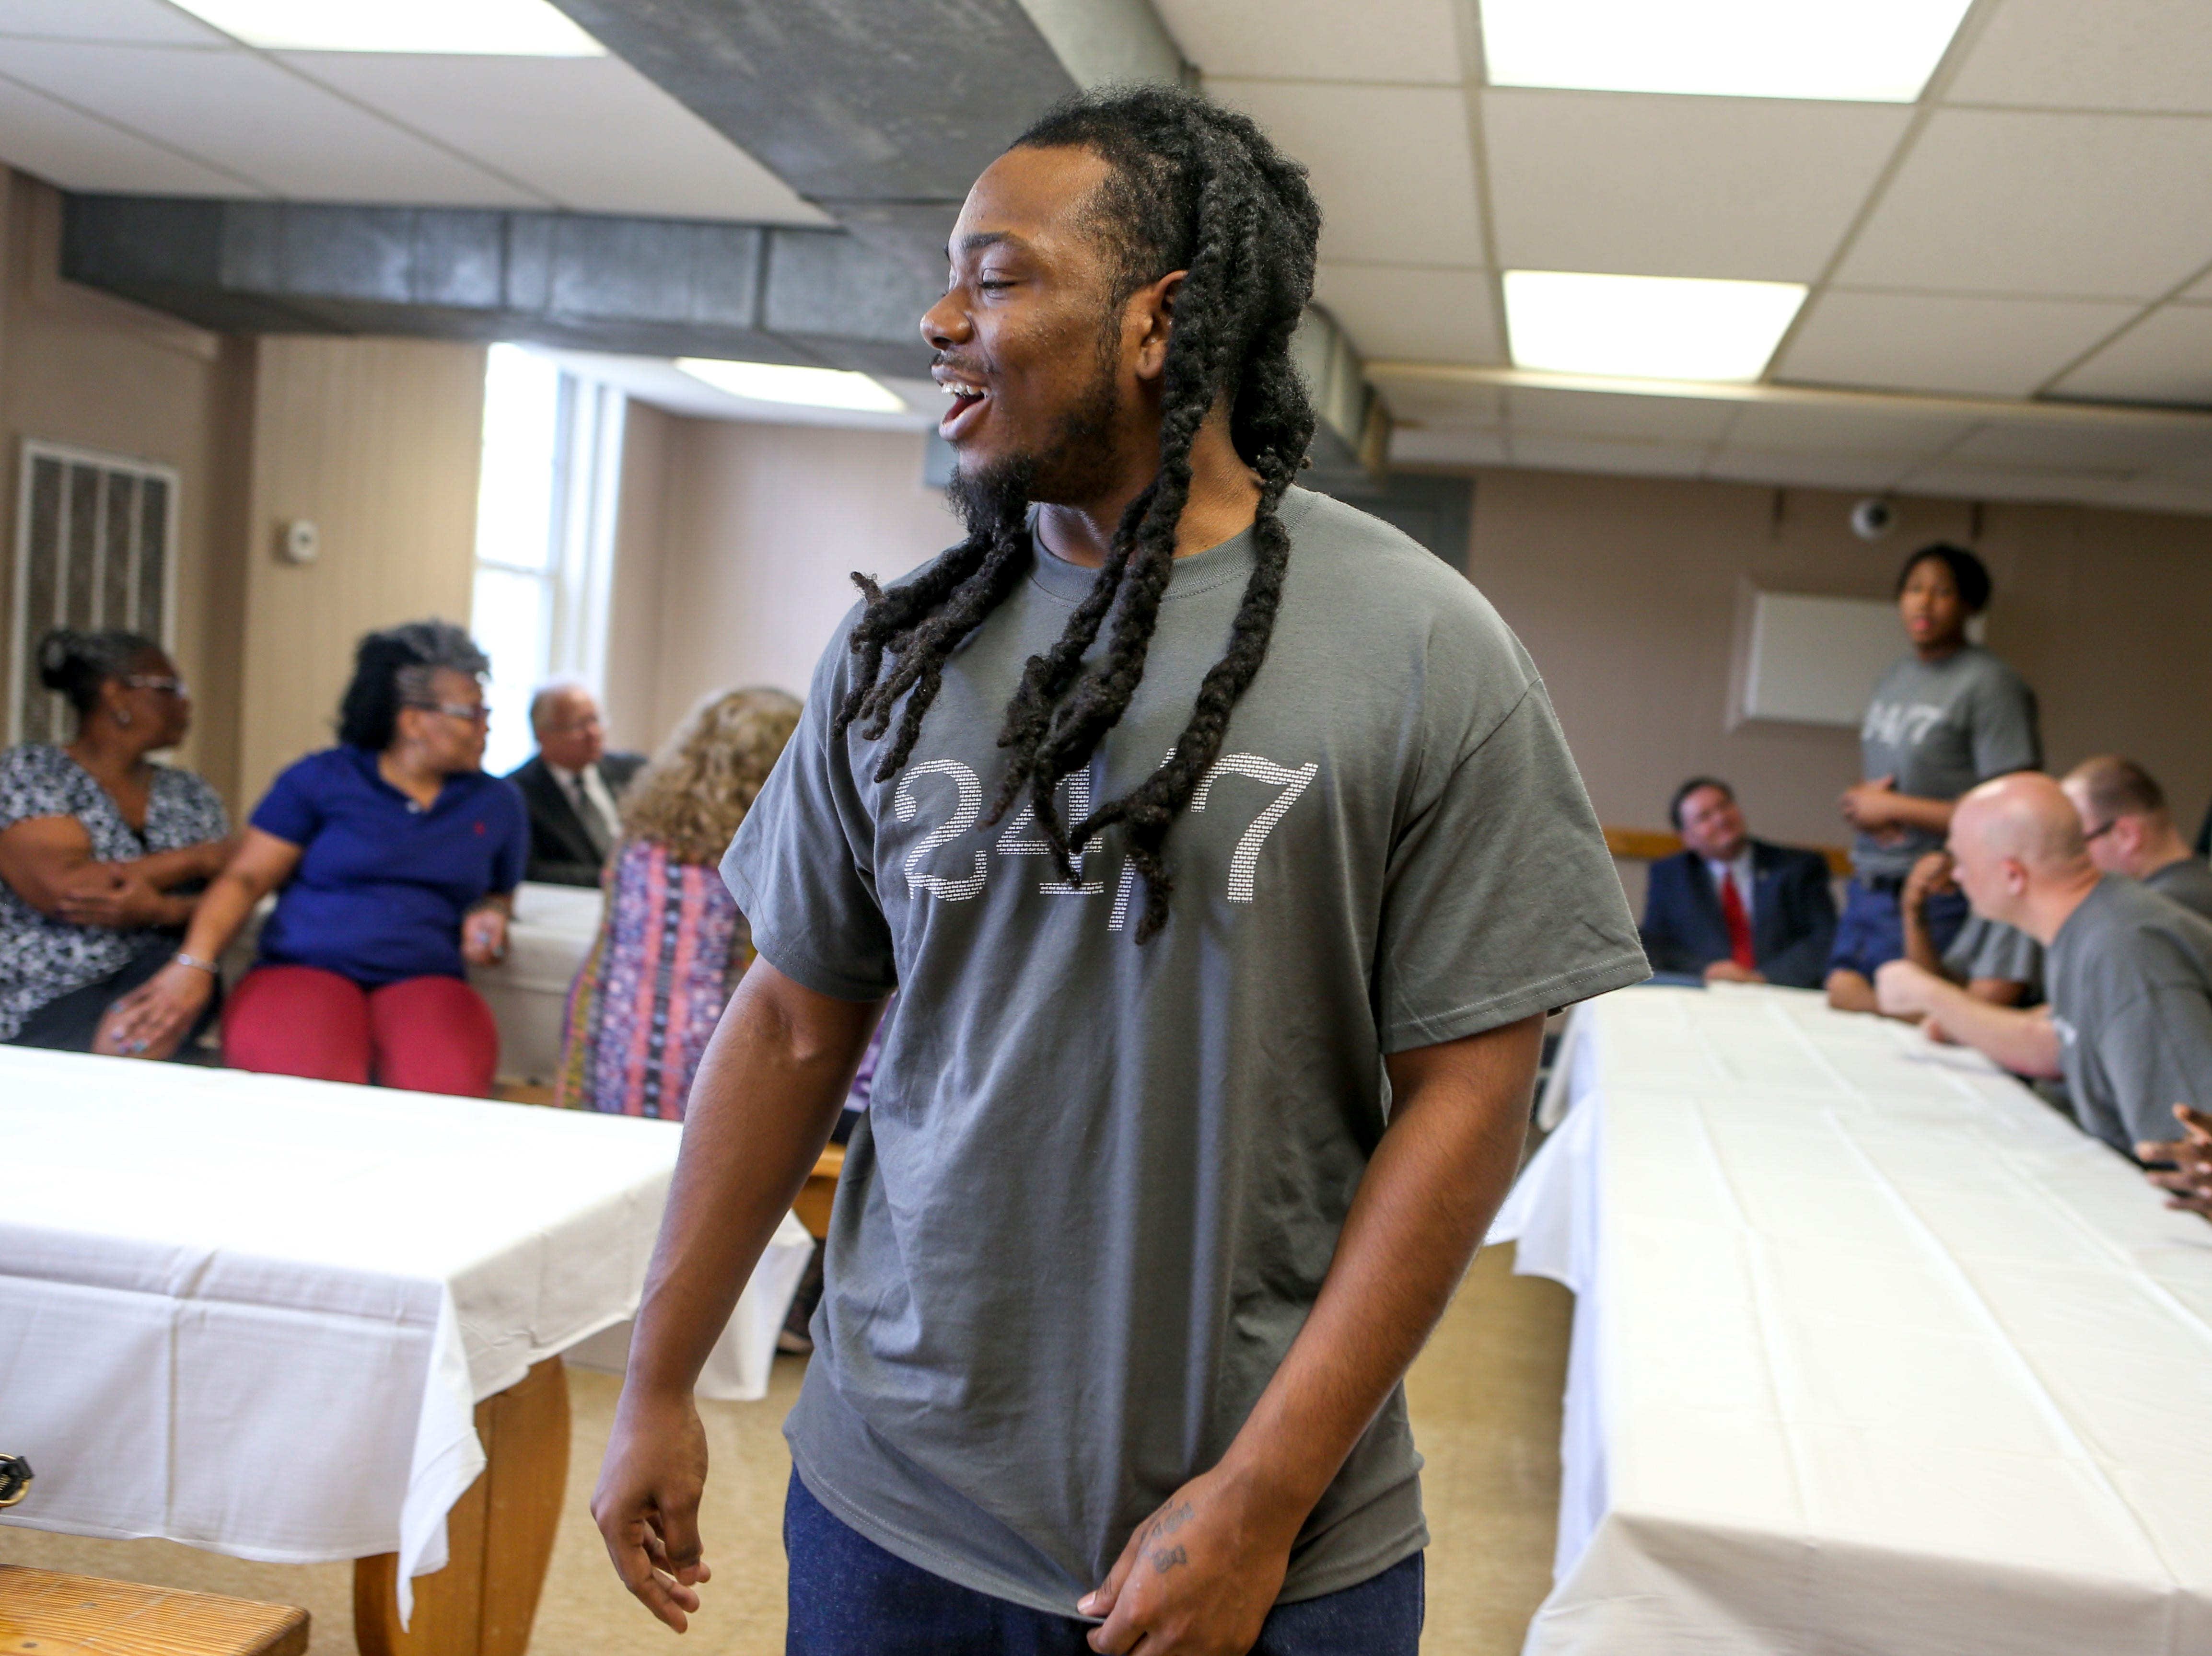 Jarrett Wilson returns to his seat and whispers to his daughter Dreya Wilson during a graduation ceremony for the InsideOut Dad program at Madison County Penal Farm in Jackson, Tenn., on Thursday, Oct. 4, 2018.